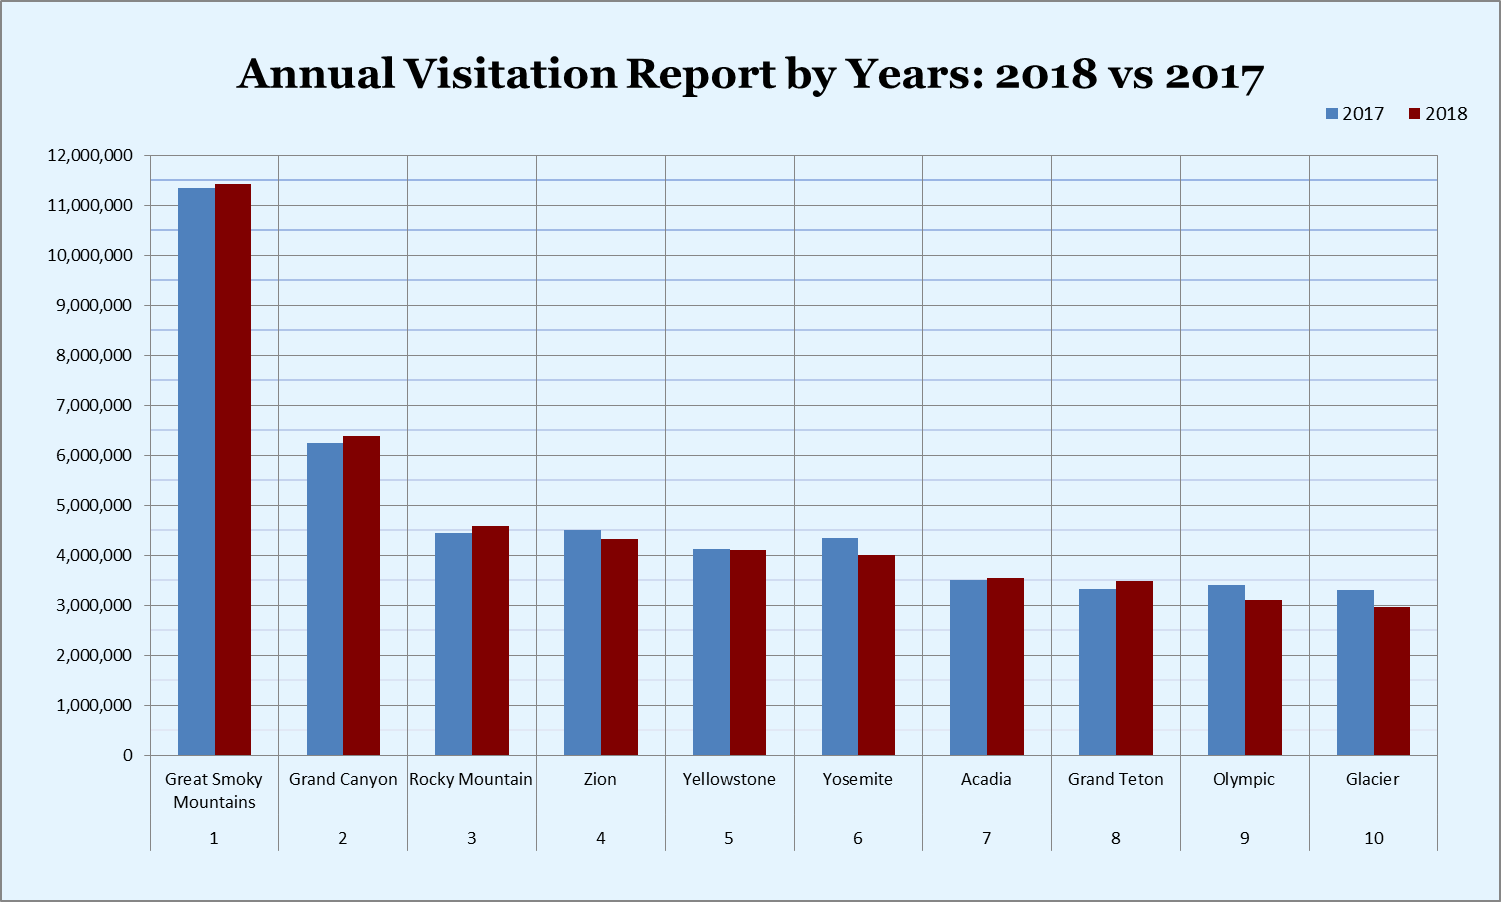 Annual Visitation Report By Years 2017-2018